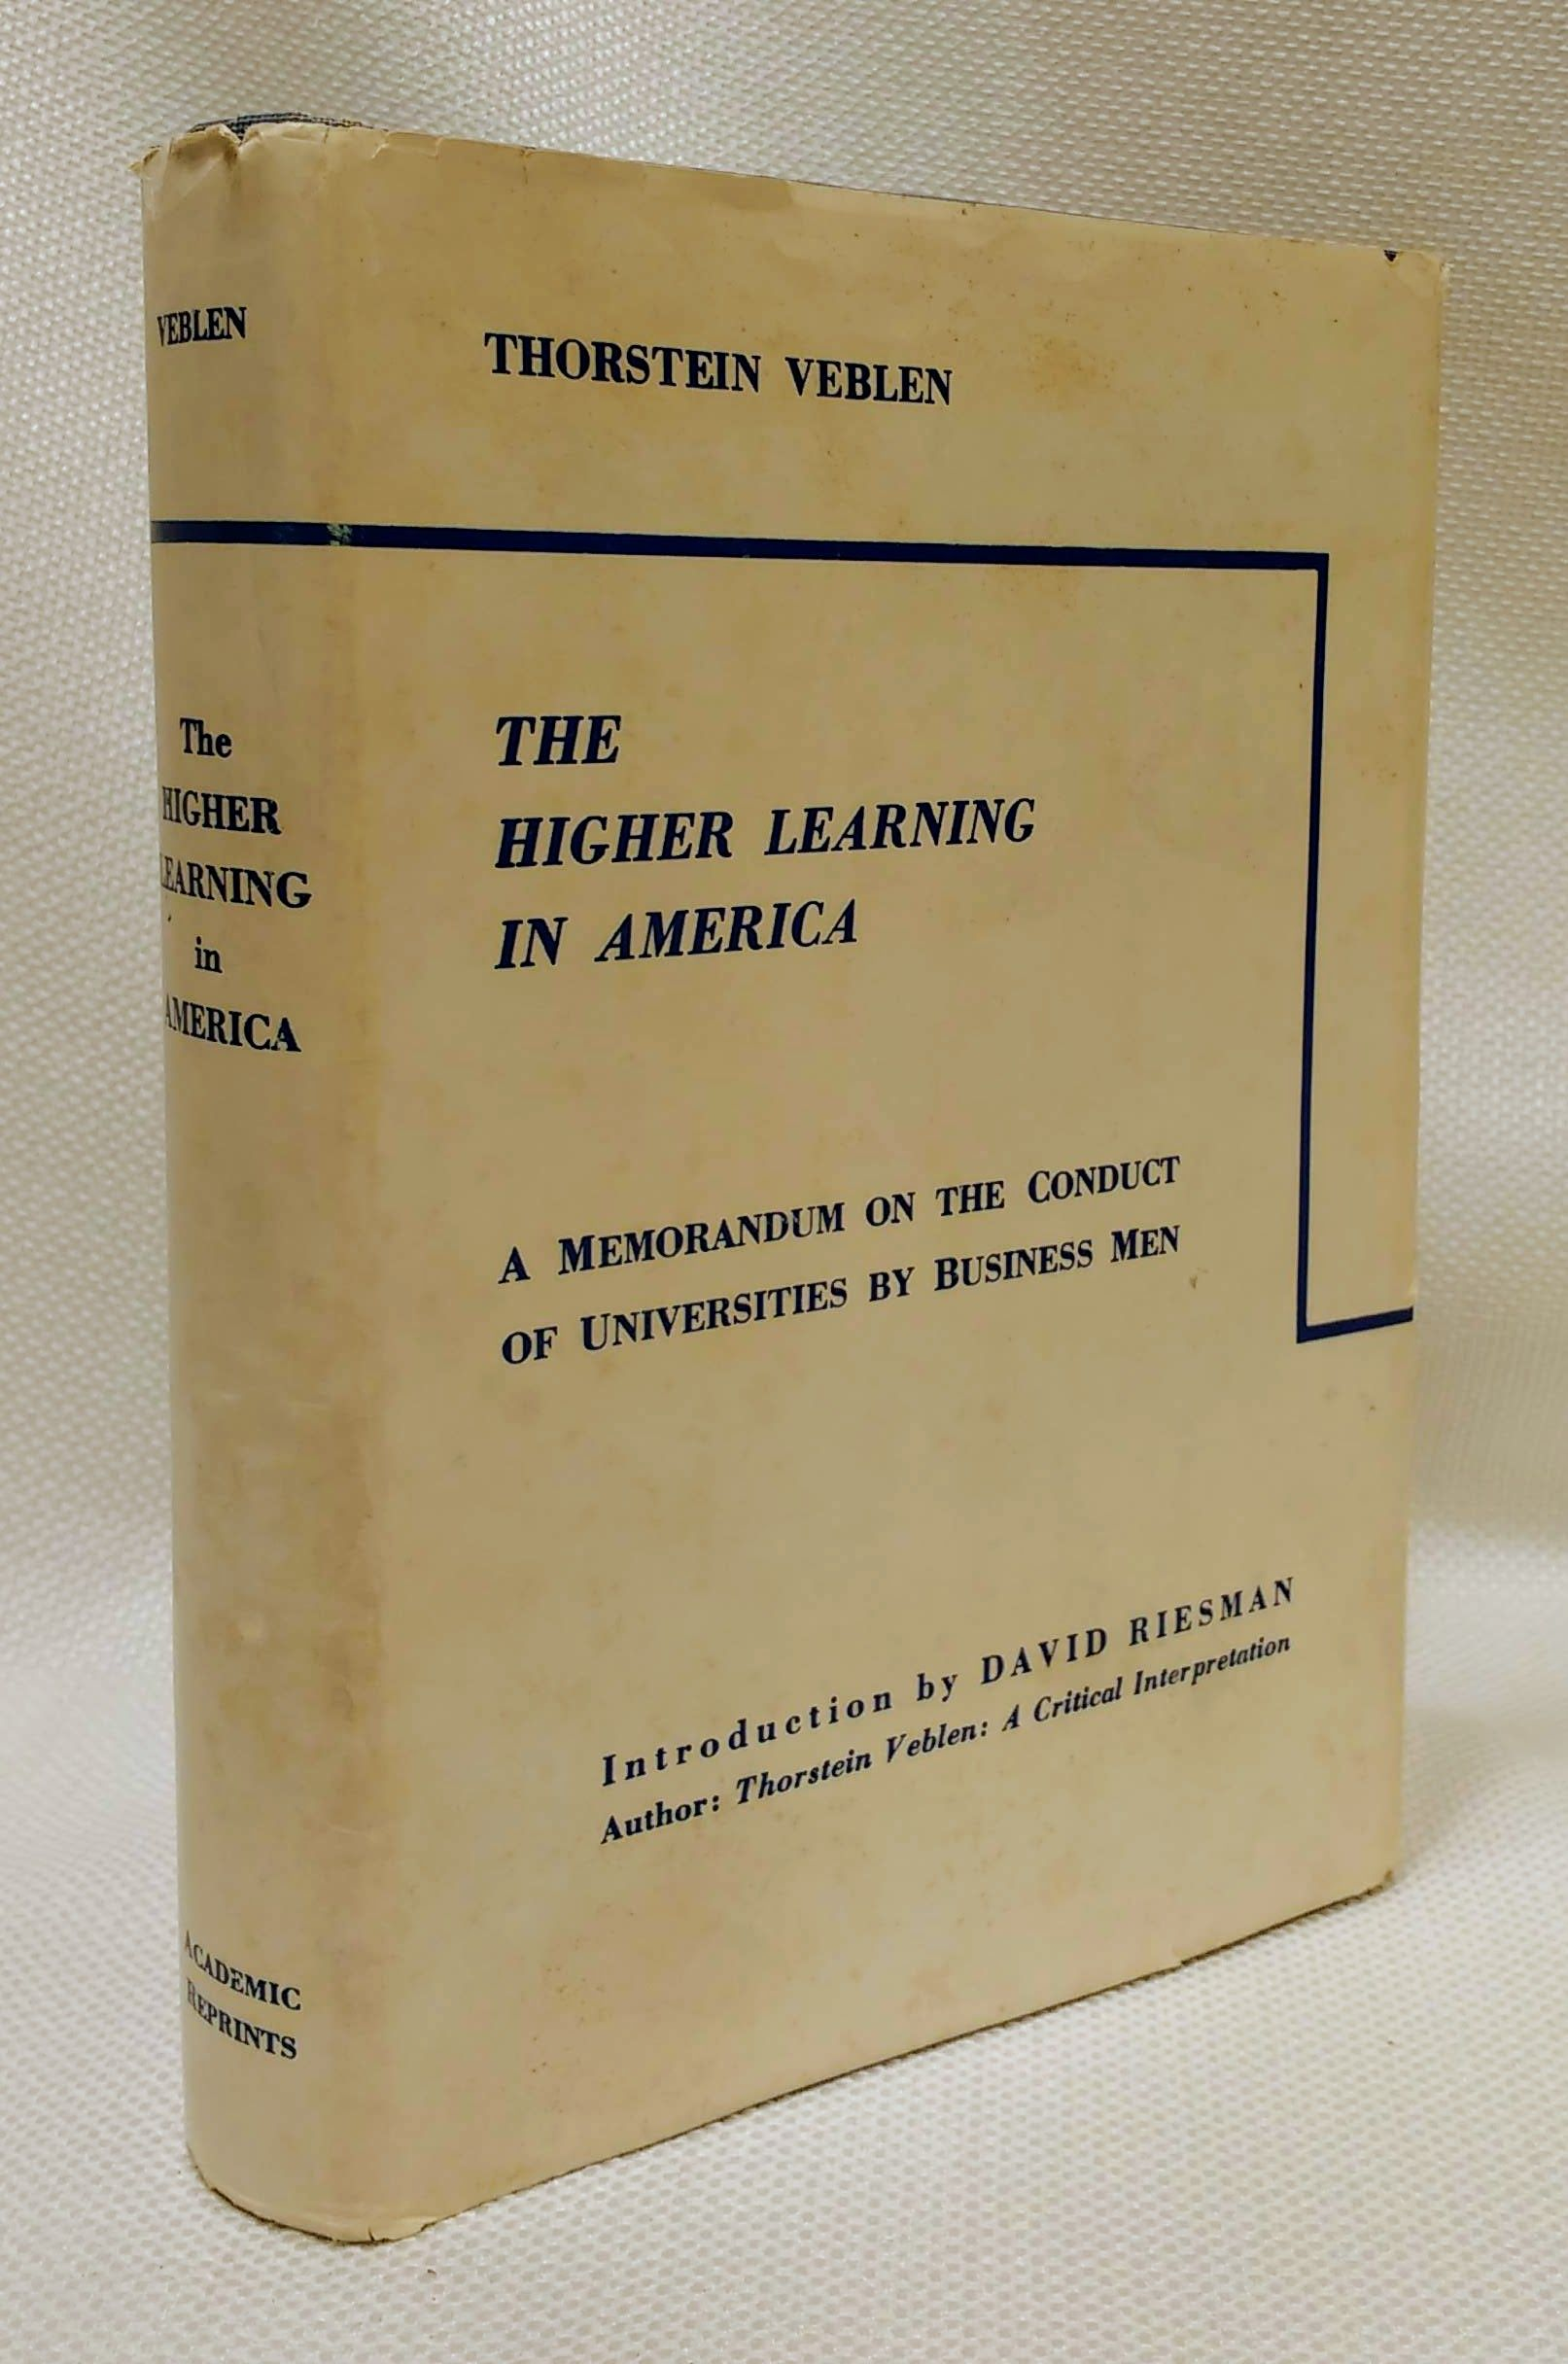 The higher learning in America;: A memorandum on the conduct of universities by business men,, Veblen, Thorstein